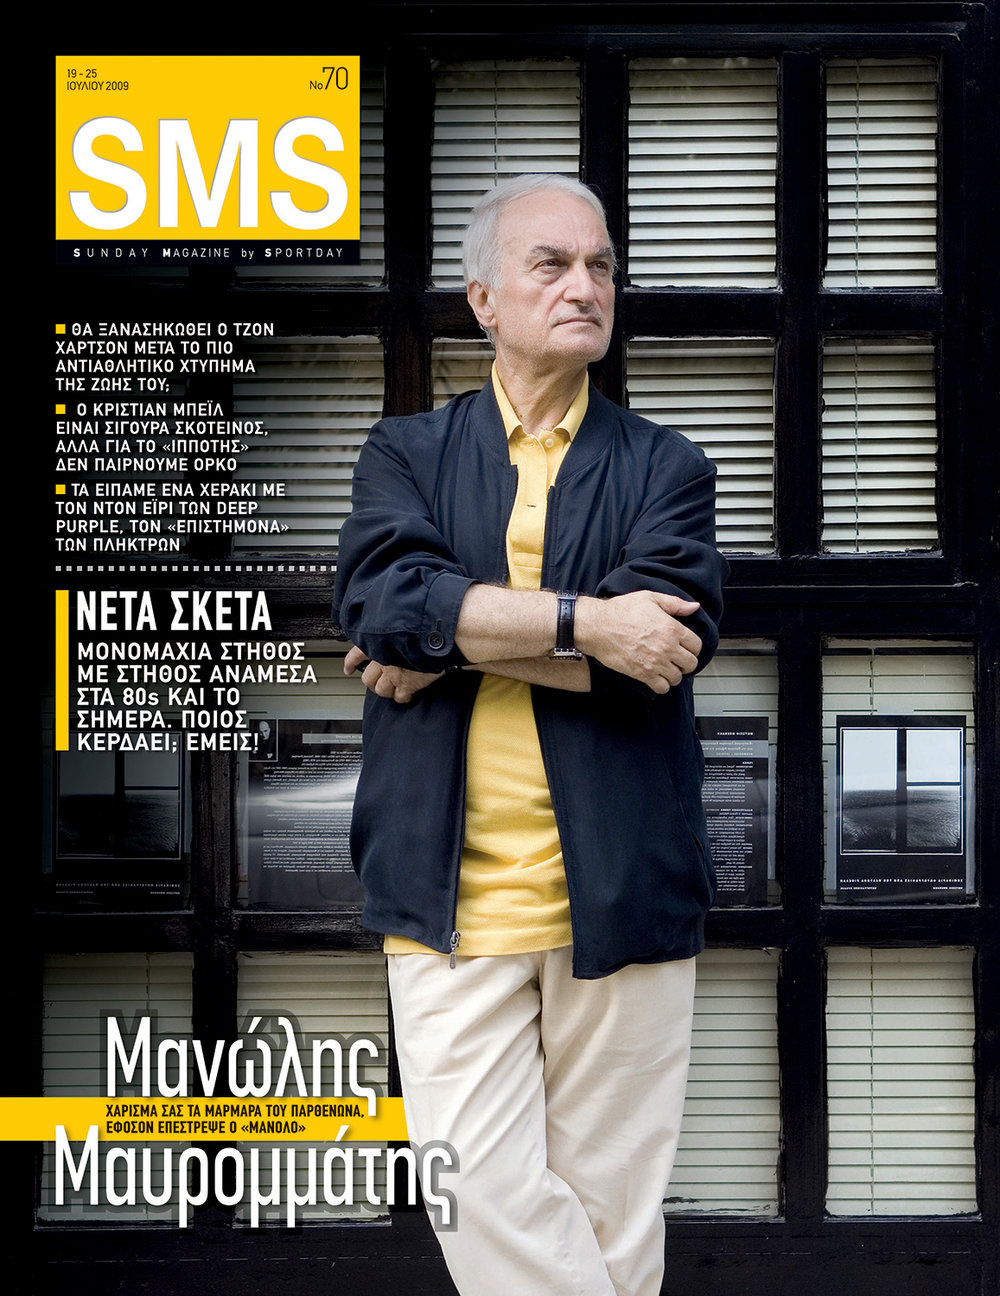 Manolis Mavromatis / journalist / SMS Sportday No 70